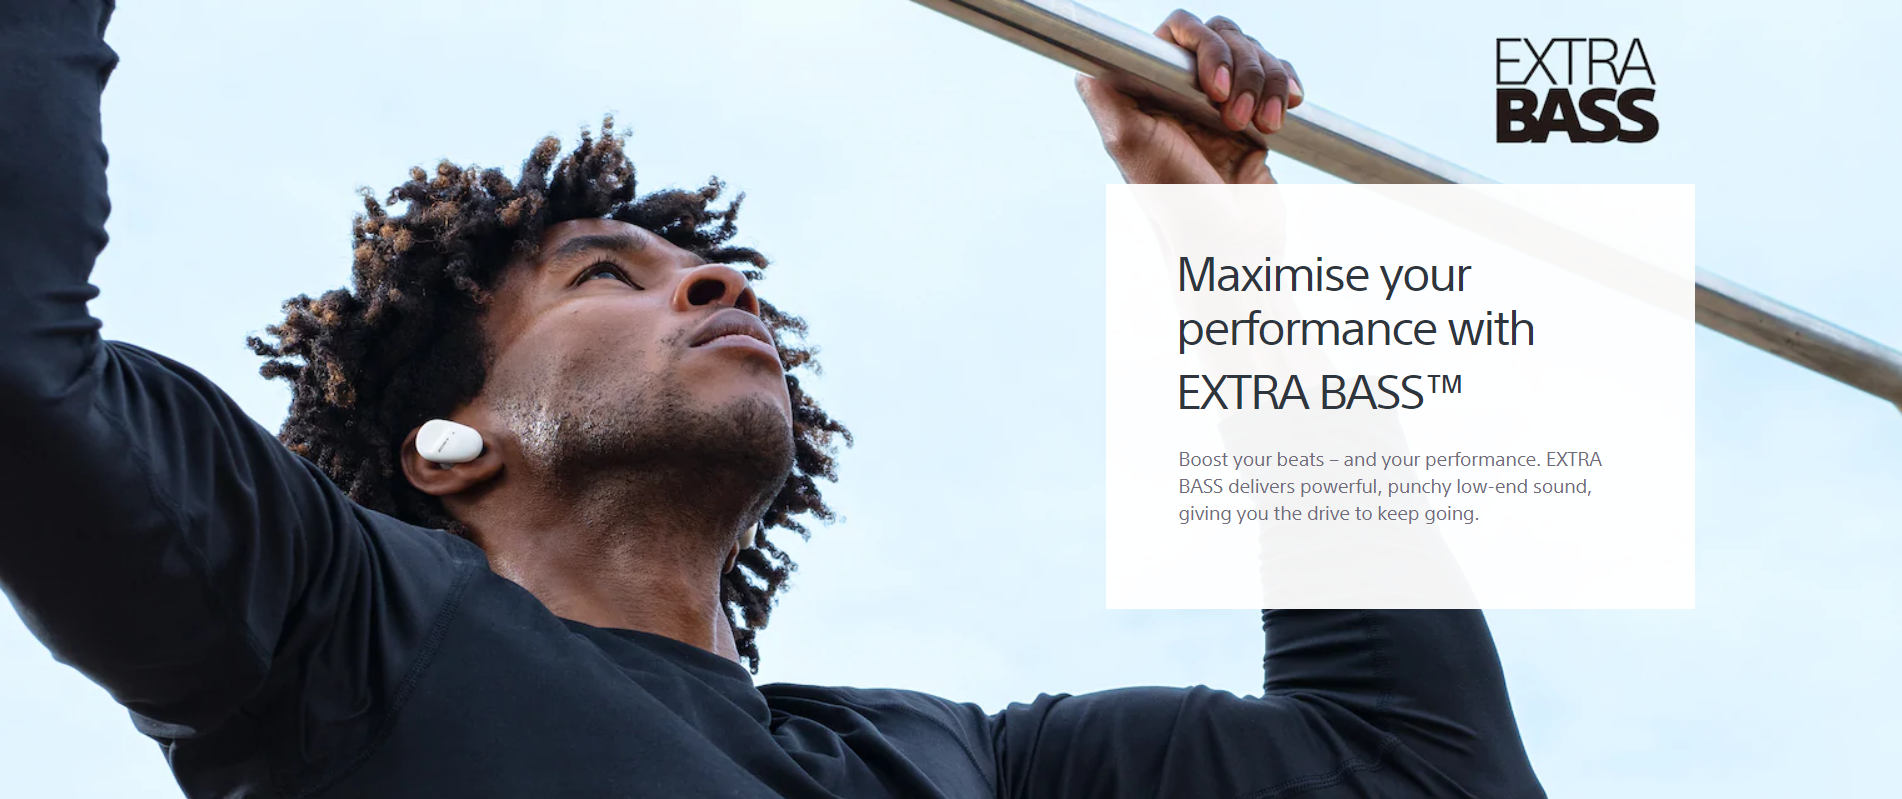 Maximise your performance with EXTRA BASS™ - Boost your beats – and your performance. EXTRA BASS delivers powerful, punchy low-end sound, giving you the drive to keep going.